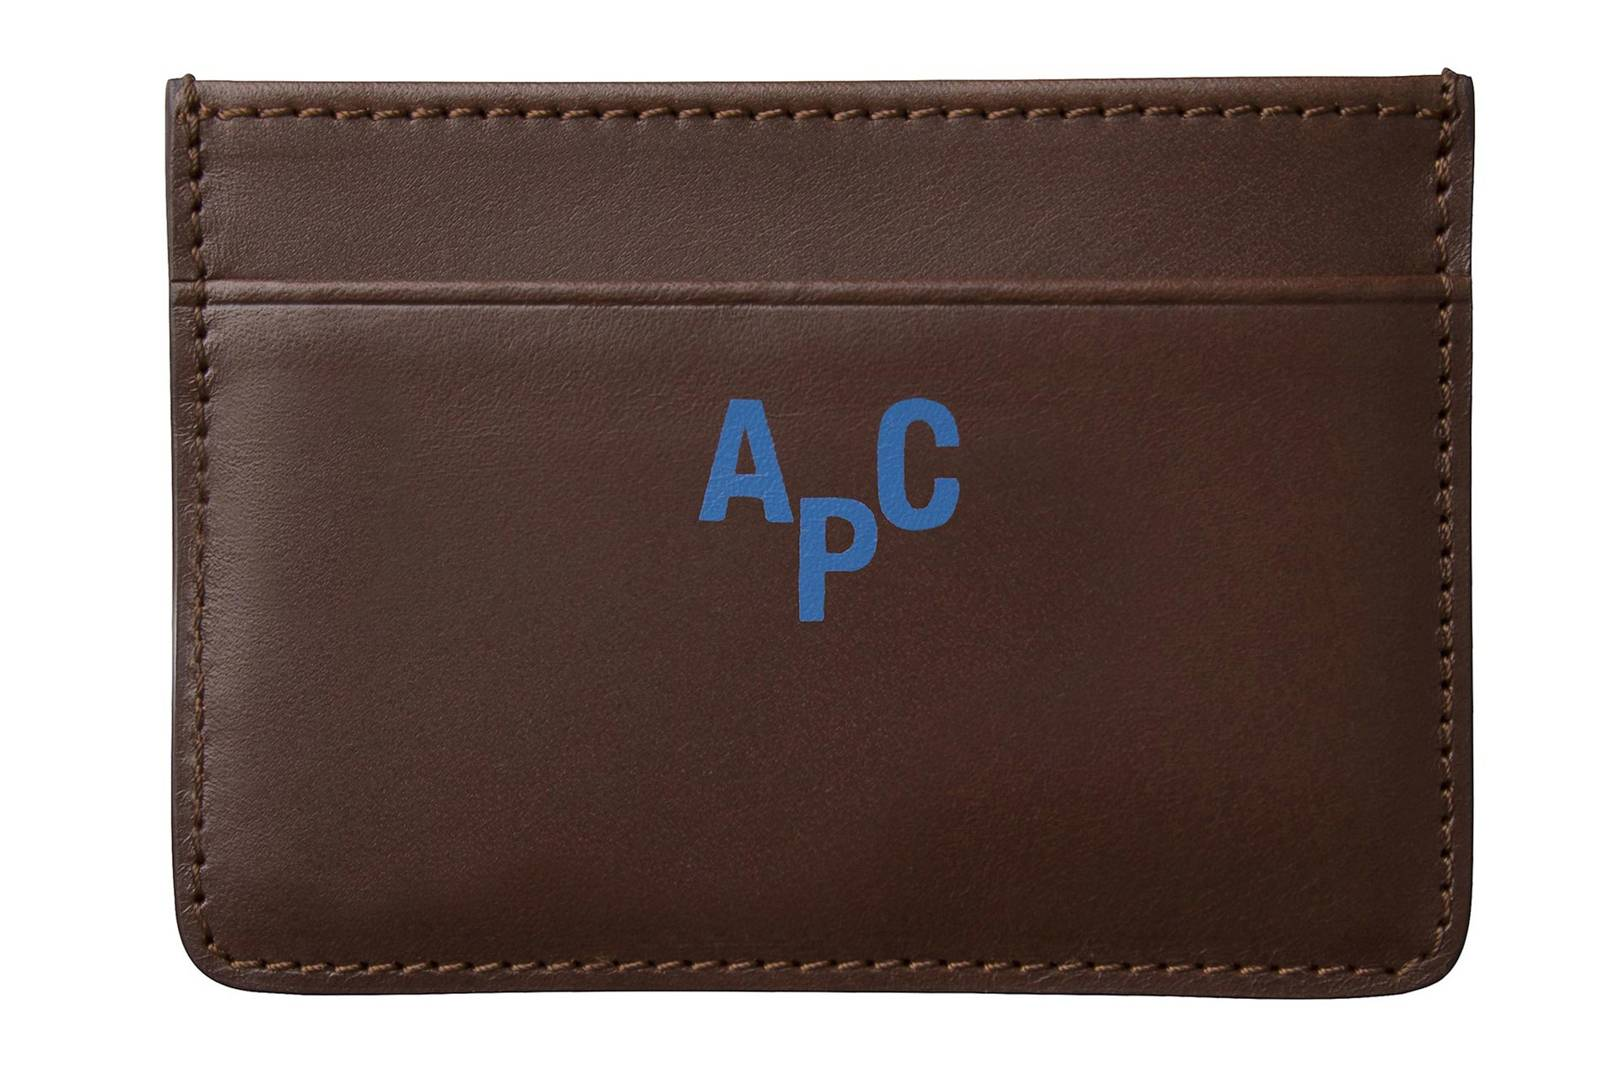 Put The Top 15 Best Wallets For Men In Your Pocket pics